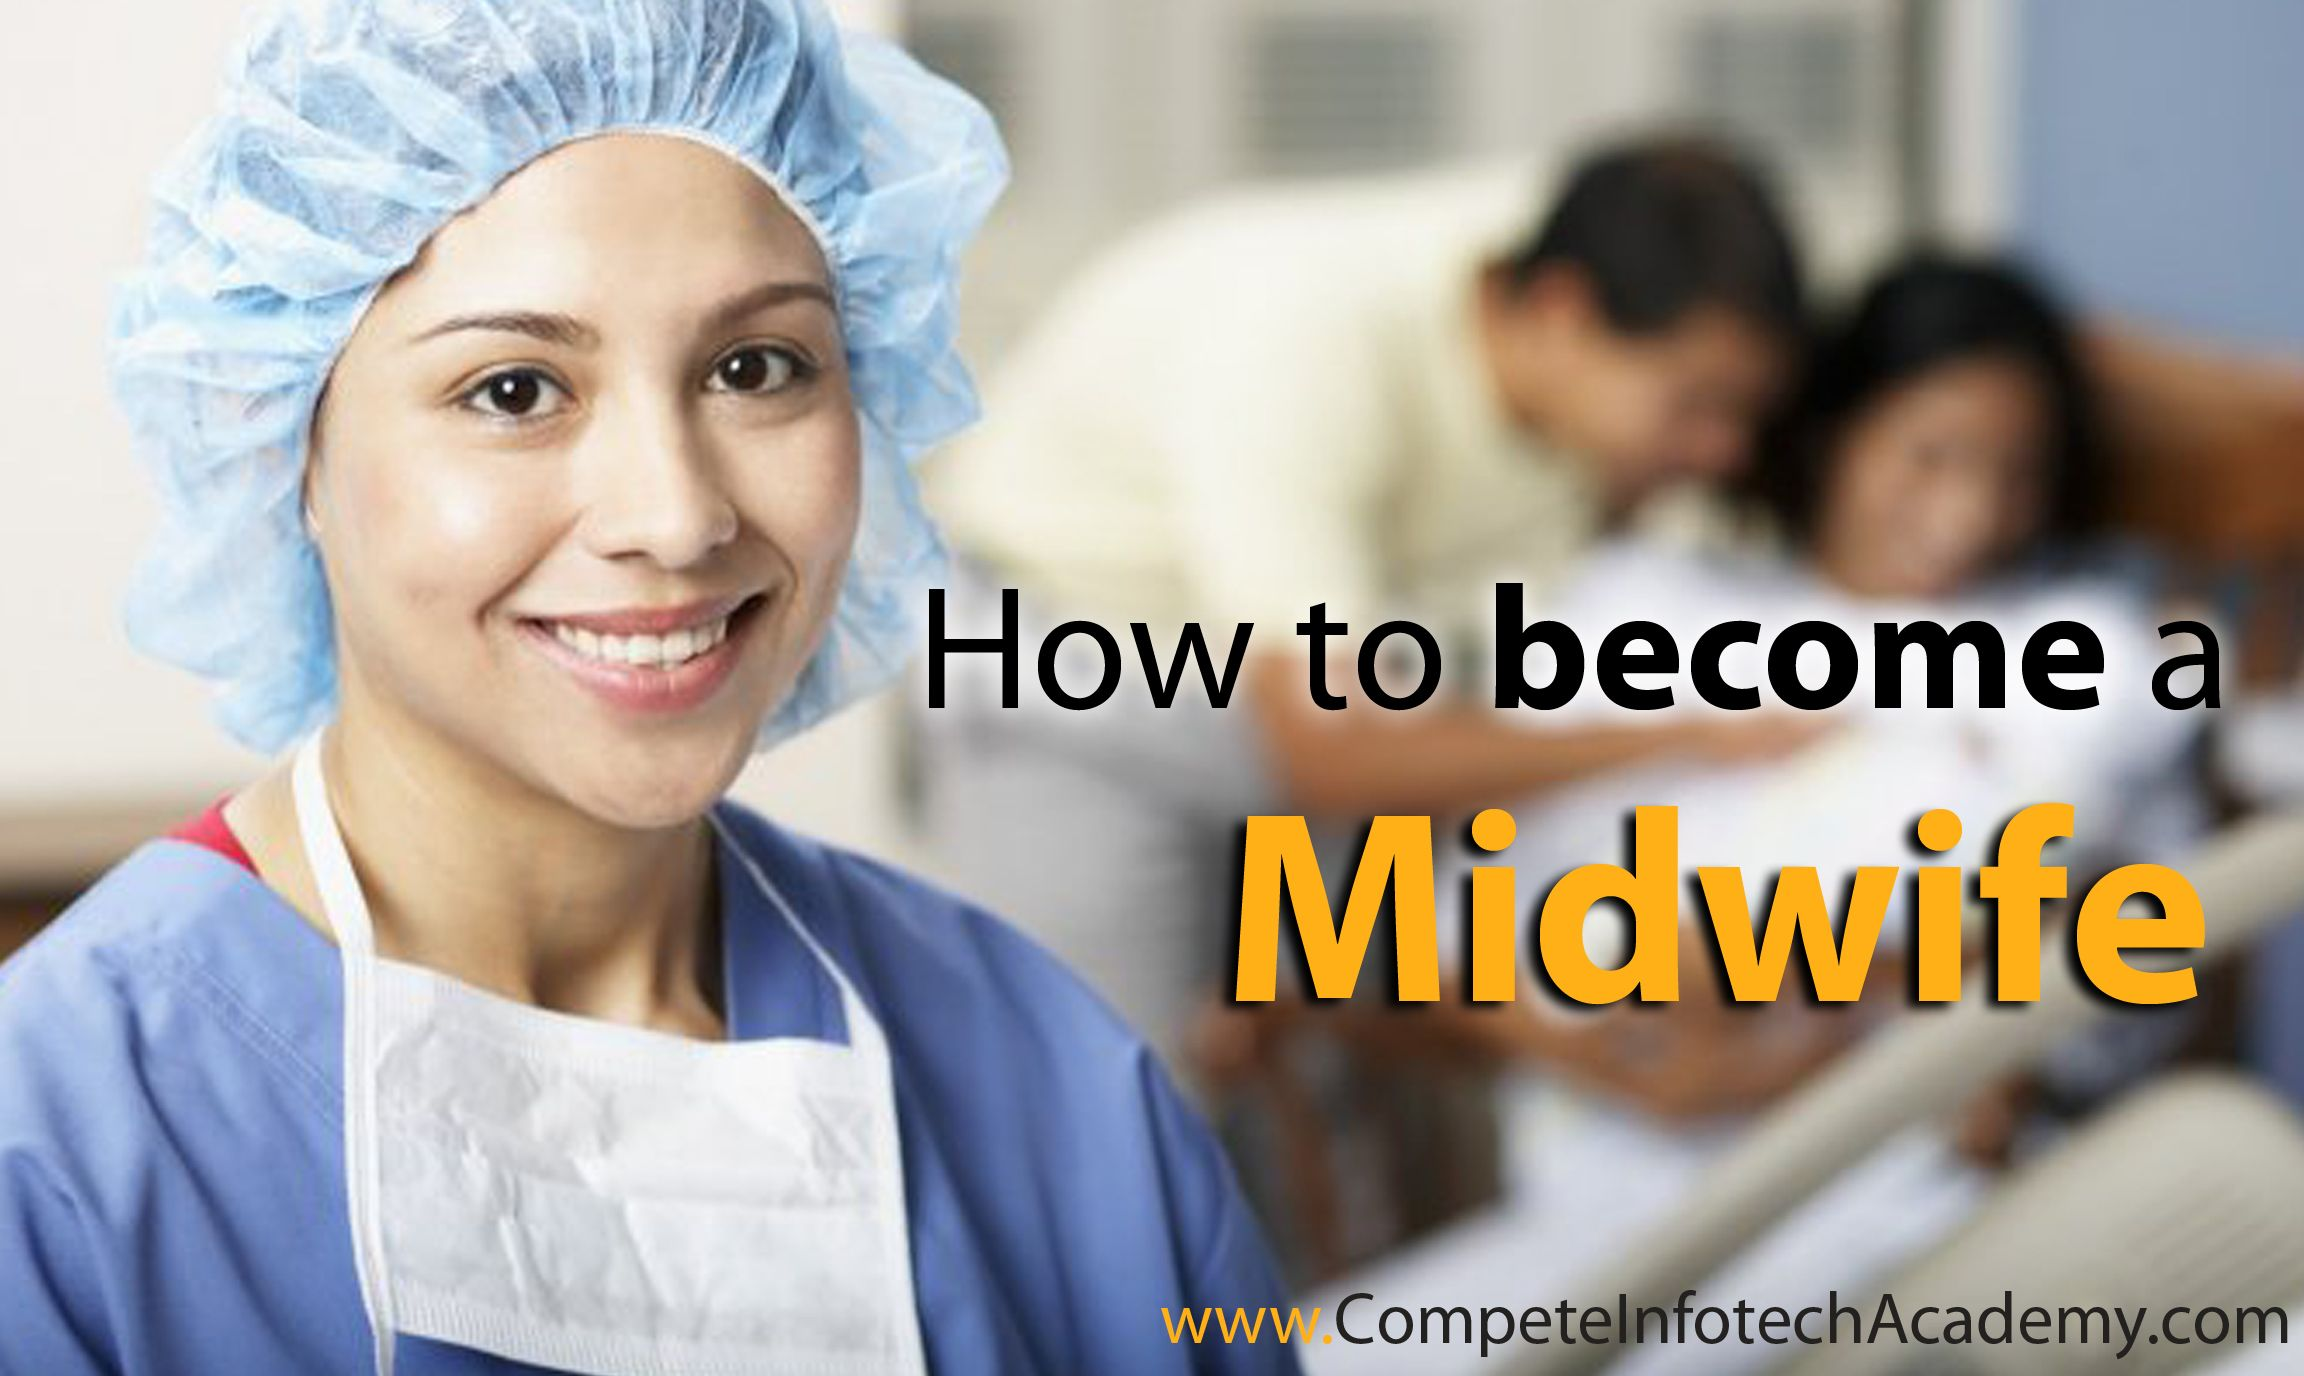 Pin on Midwife's Assistant Field Guide